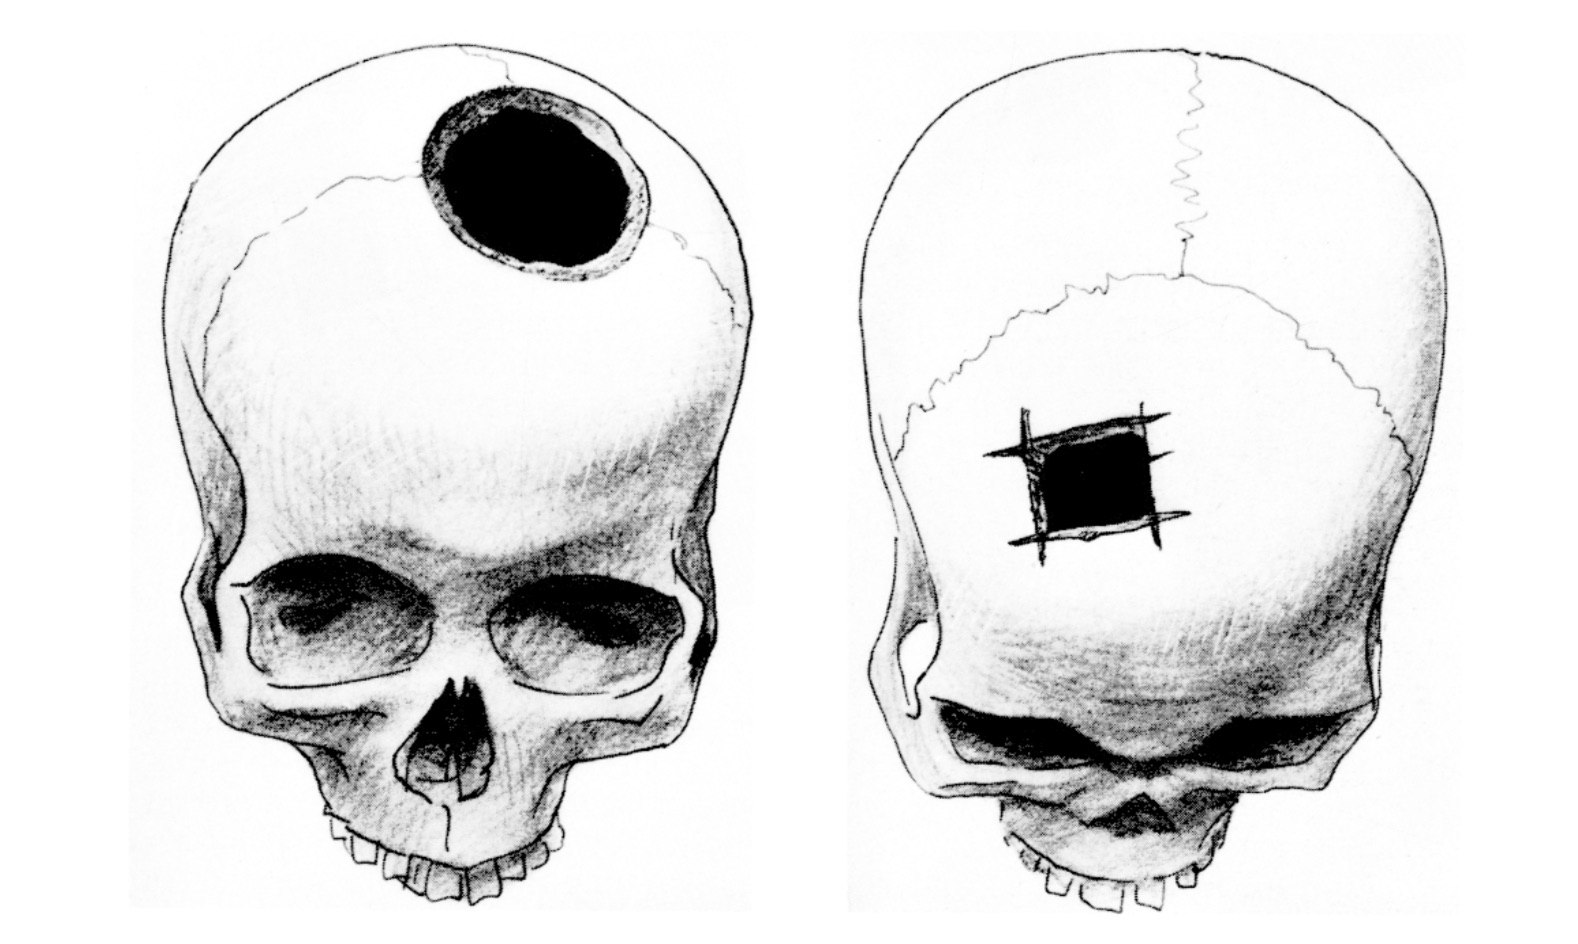 Left: Round trephination found in Jericho. Right: Angular trephination, found in Timna. Angular trephination was associated with a very low rate of survival, indicated by lack of healing of the wound in the skull. It may have been practiced for ritual rather than for therapeutic reasons. From Arensburg B., Hershkovitz I. Cranial deformation and trephination in the Middle East.   Bulletins et Mémoires de la Société d'anthropologie de Paris,   XIV° Série. Tome 5 fascicule 3, 1988. pp. 139-150.